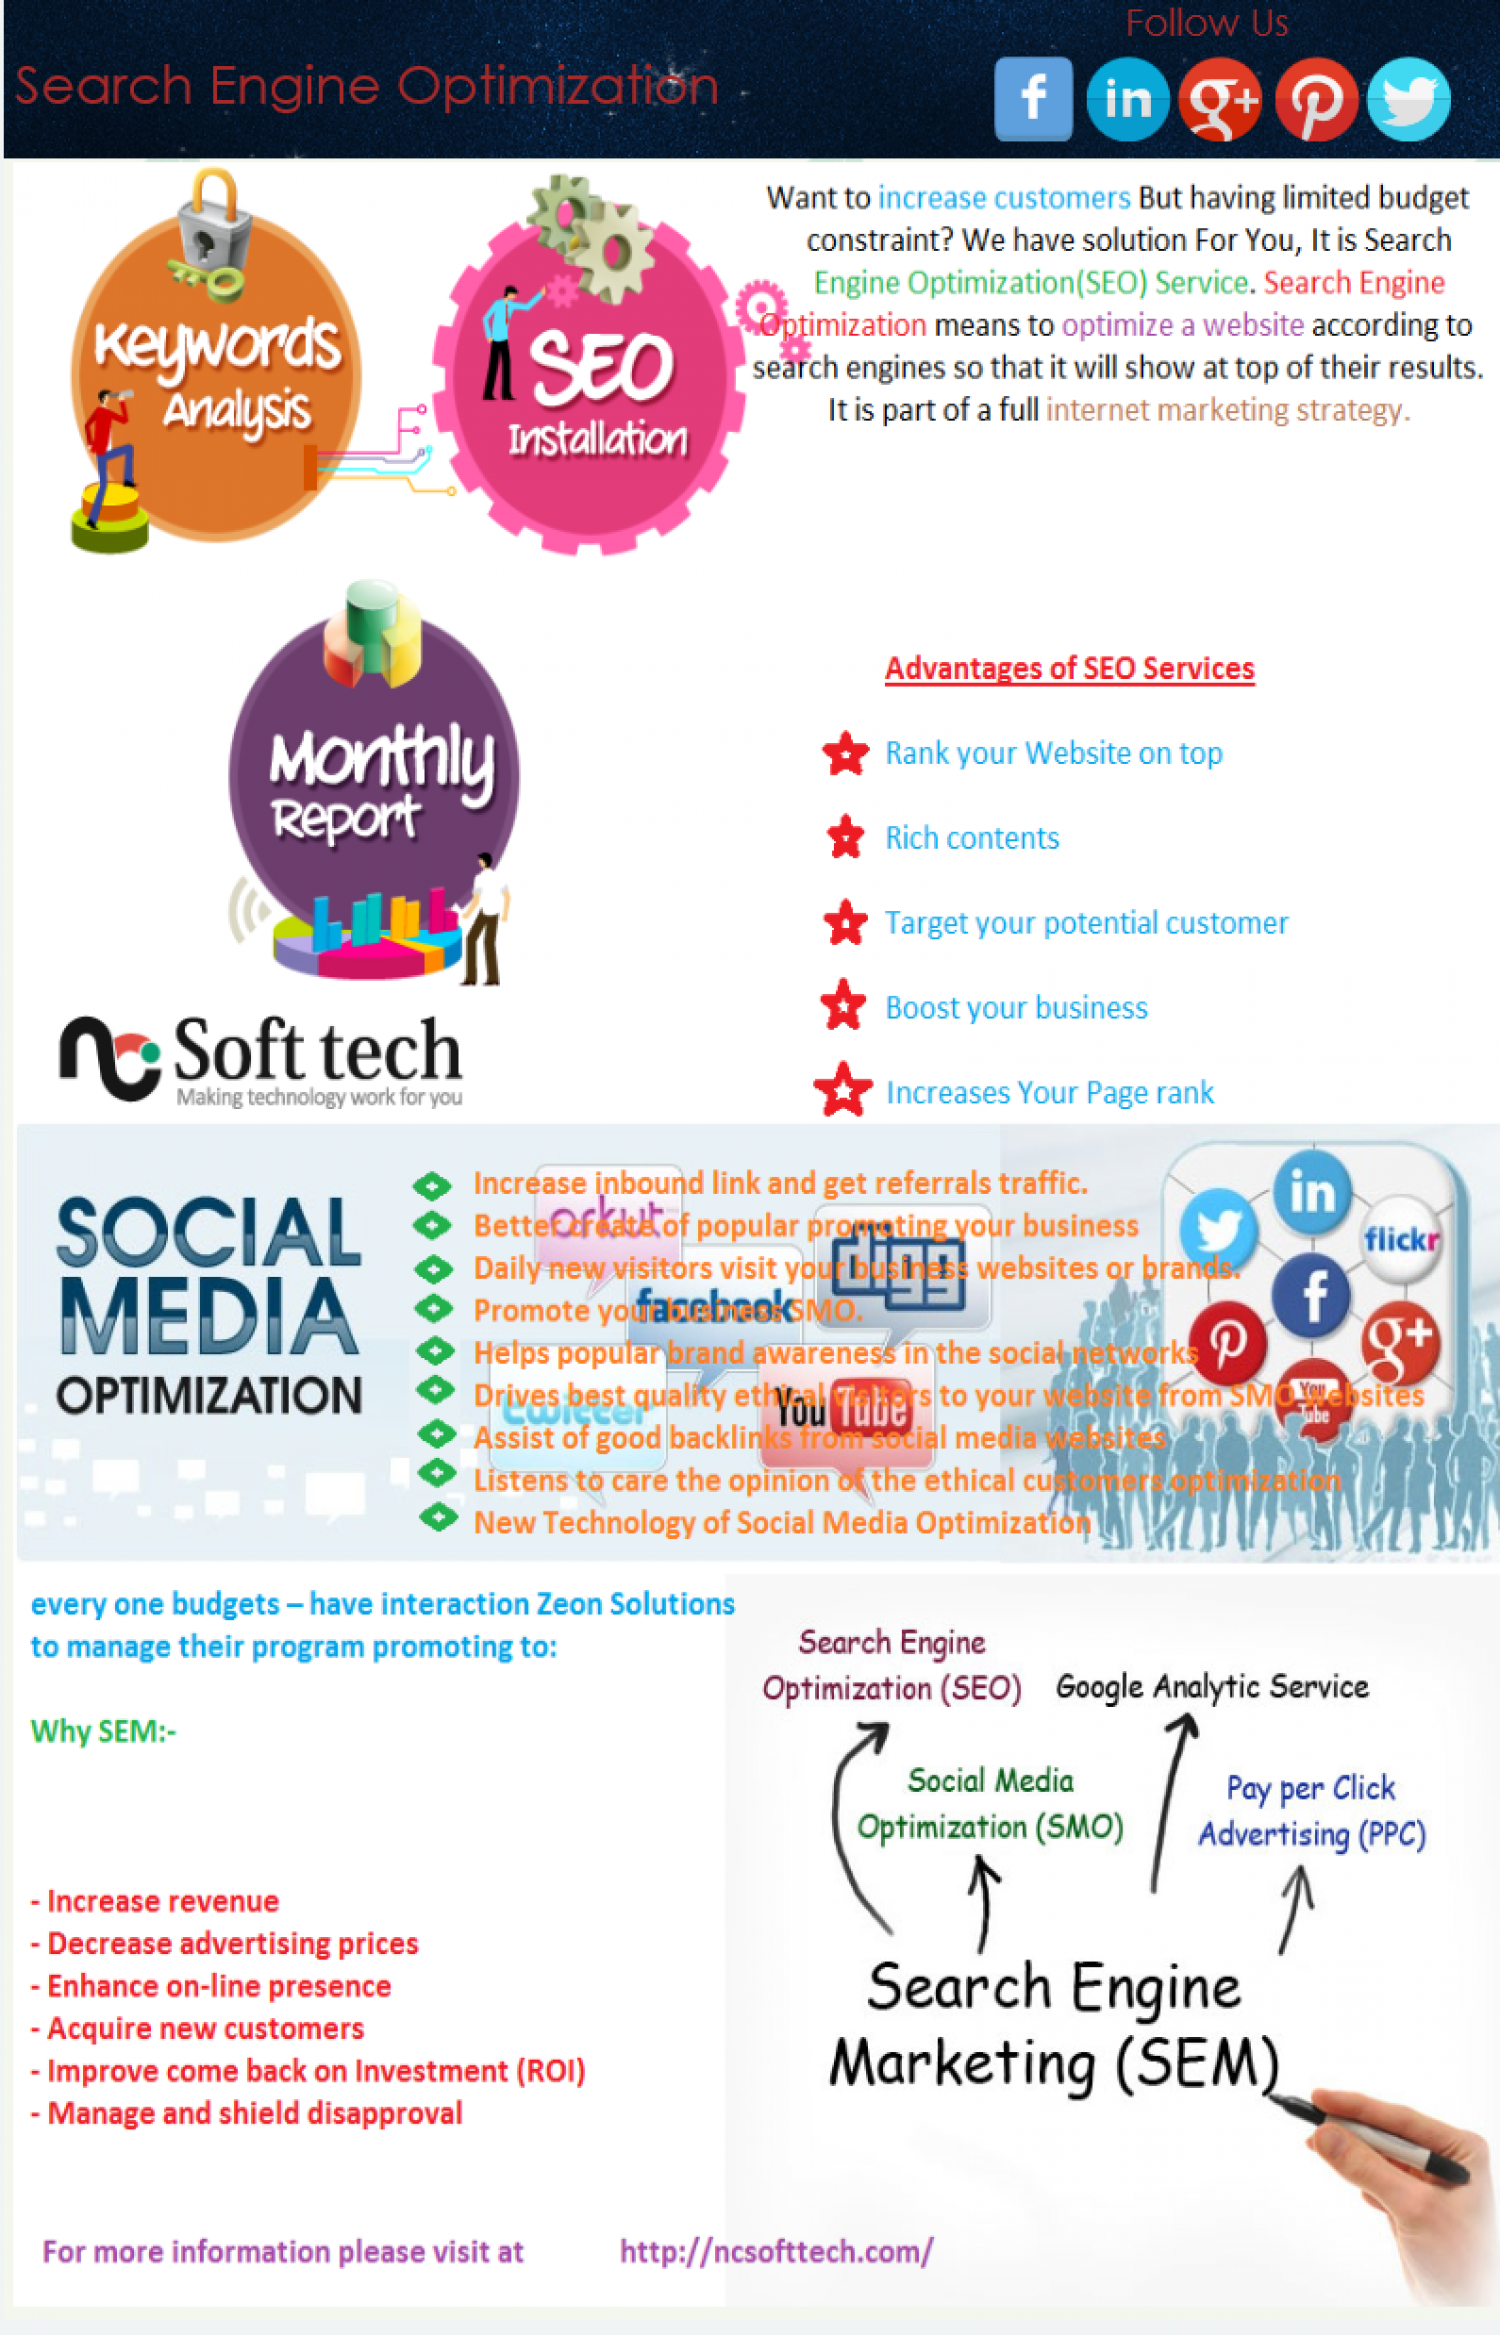 Digital marketing services in india Infographic